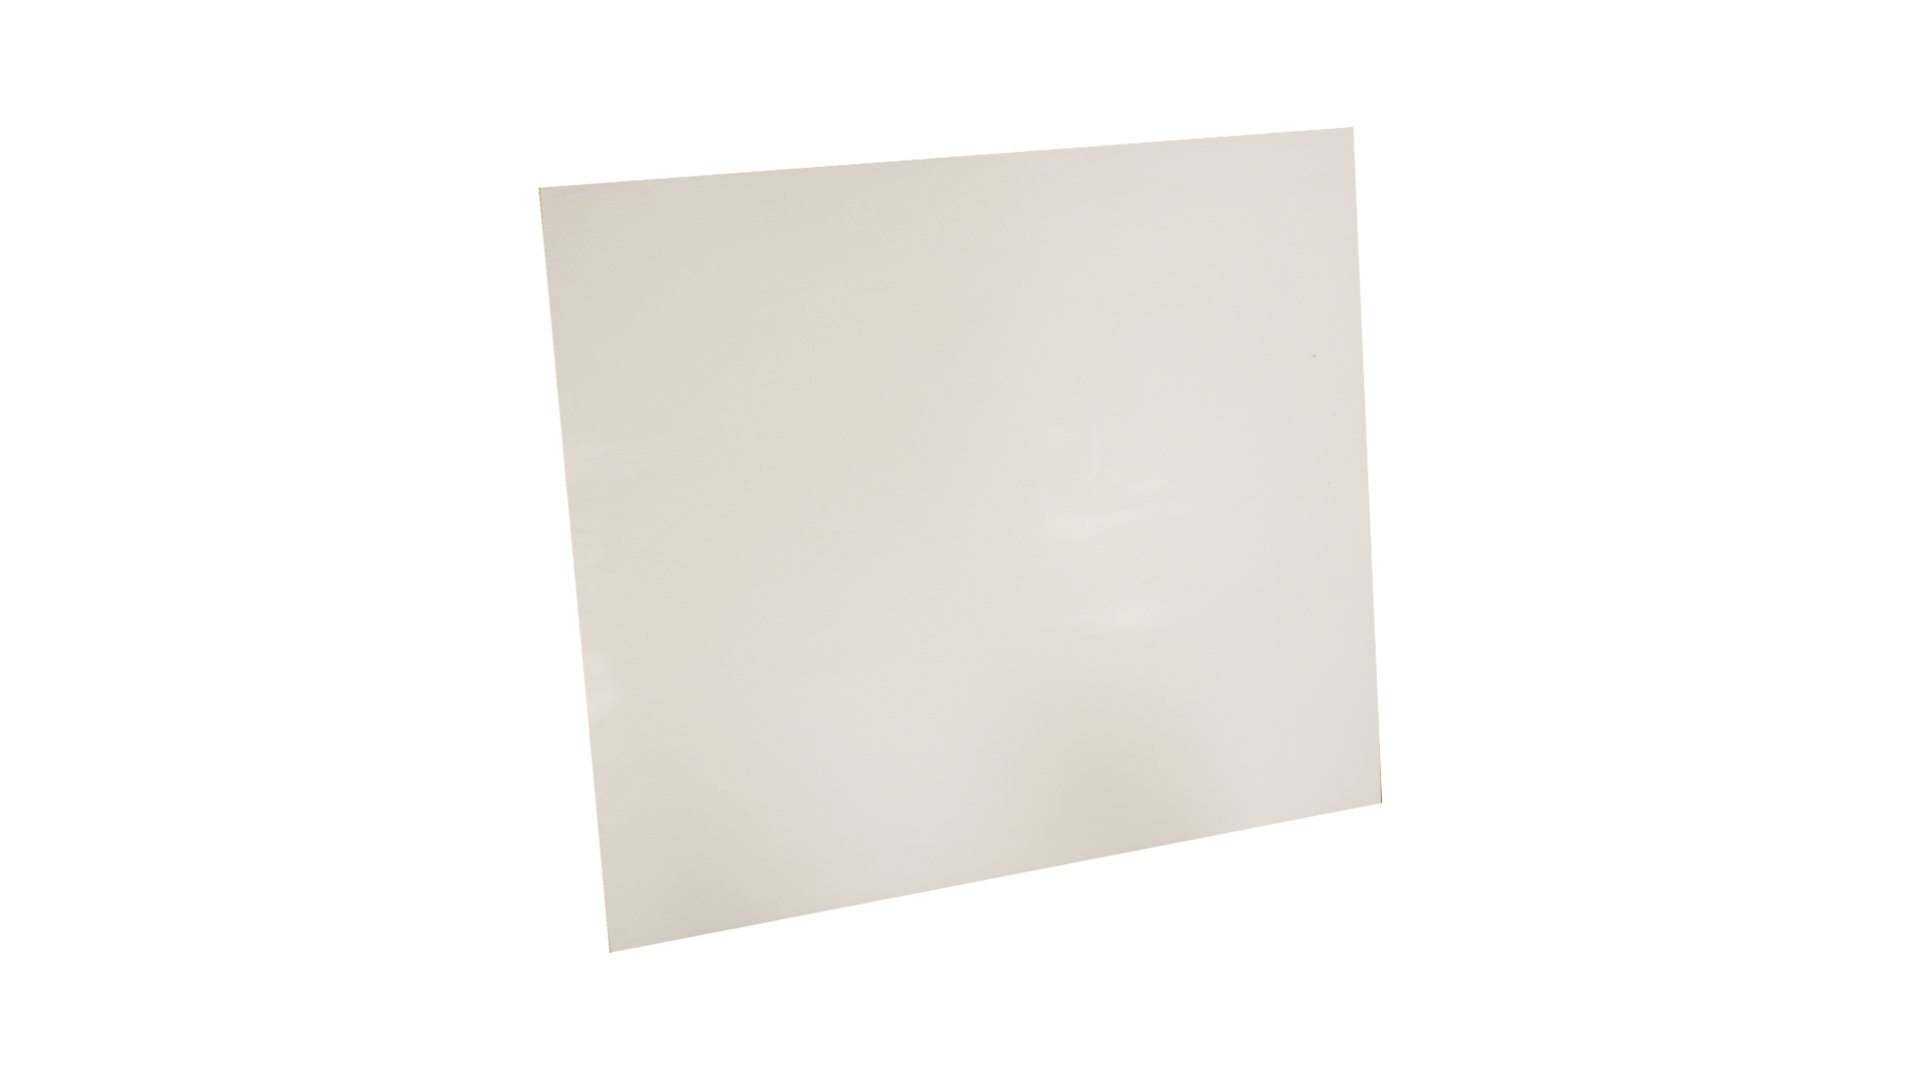 Sterling Seal & Supply (STCC) White Virgin Teflon 7530 Sheet, 1/32'' Thick, 6'' x 6'' Square (QTY 1) by Sterling Seal & Supply, Inc. (STCC)